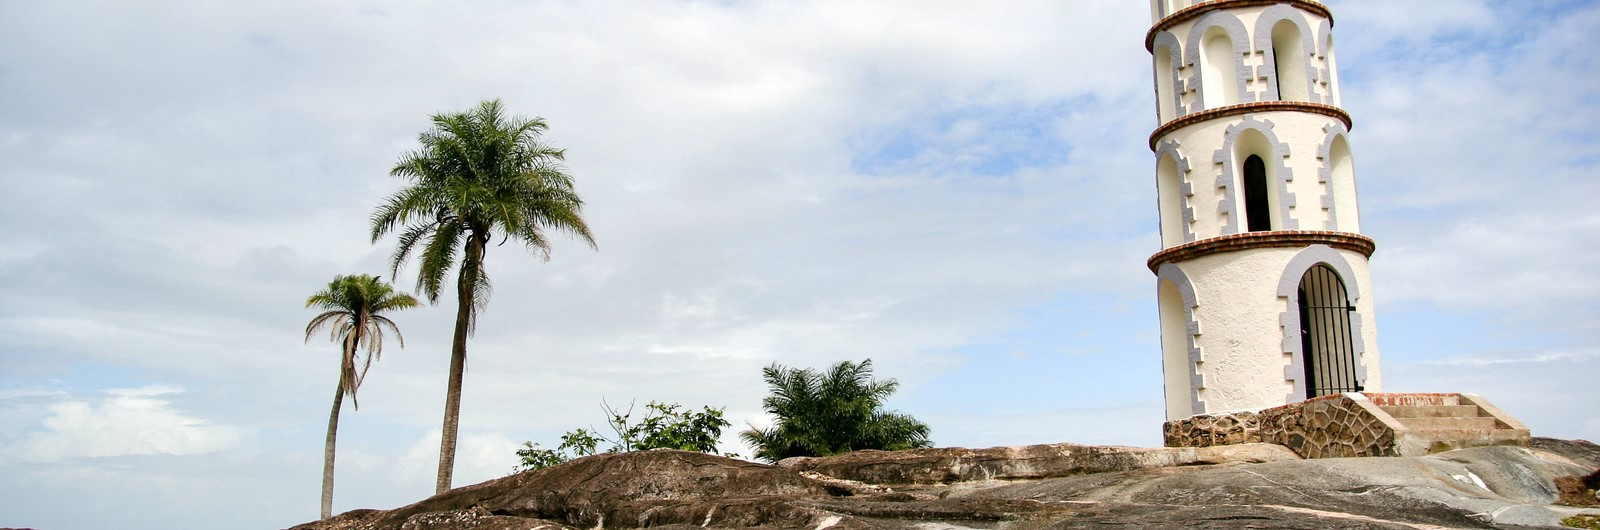 kourou city header